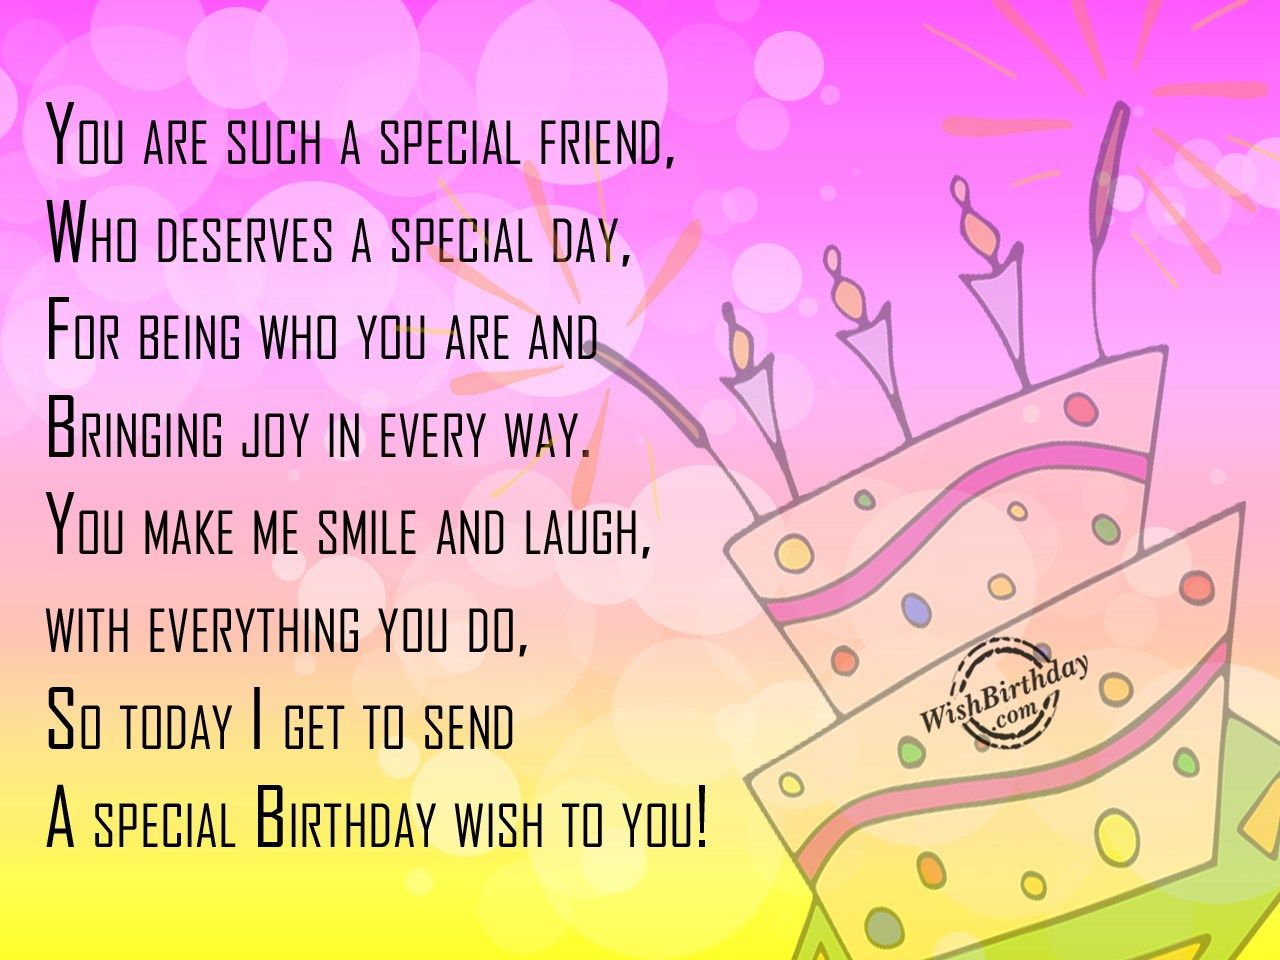 Special Birthday Wish To You Birthday cards for friends